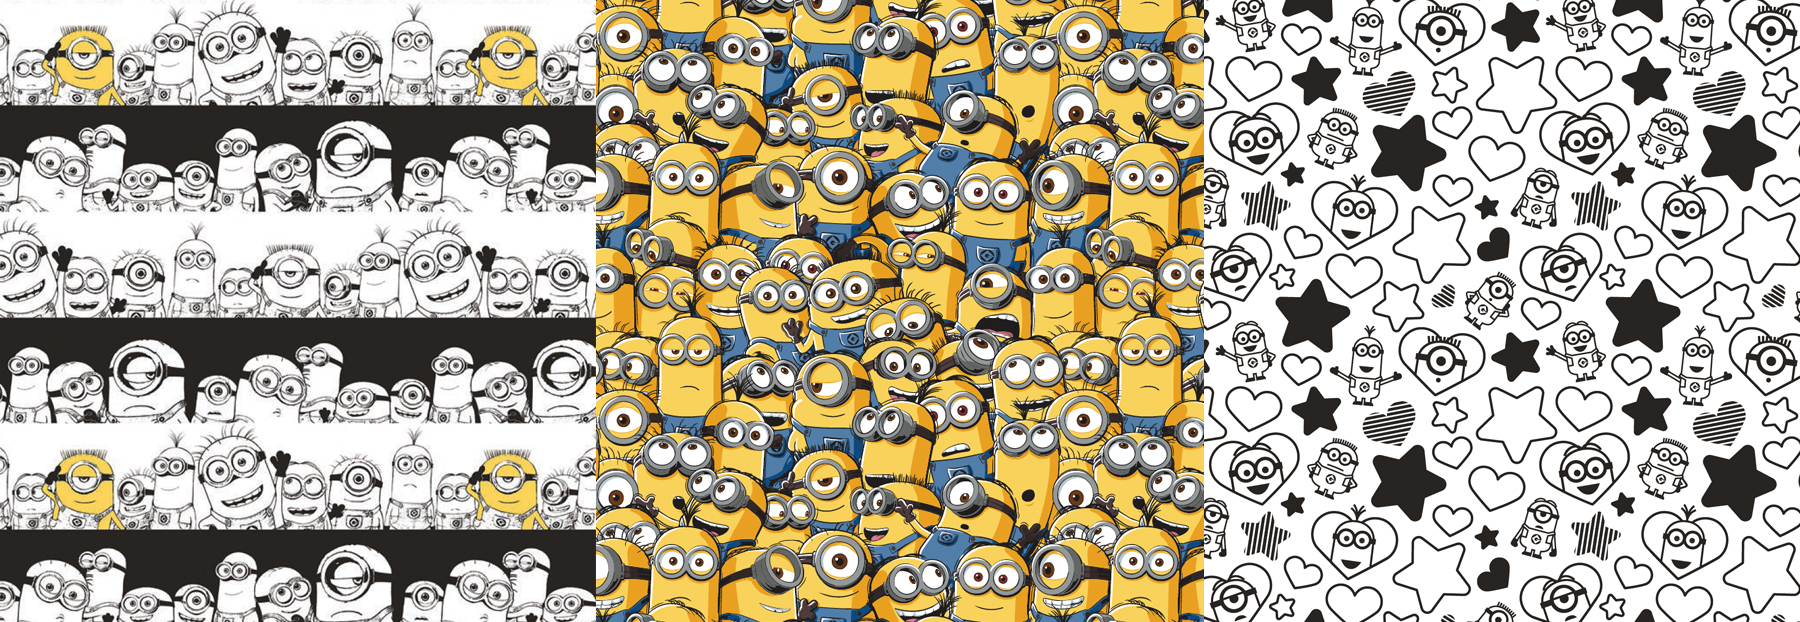 Minions Character Pattern Style Guide Design - Thumb 5